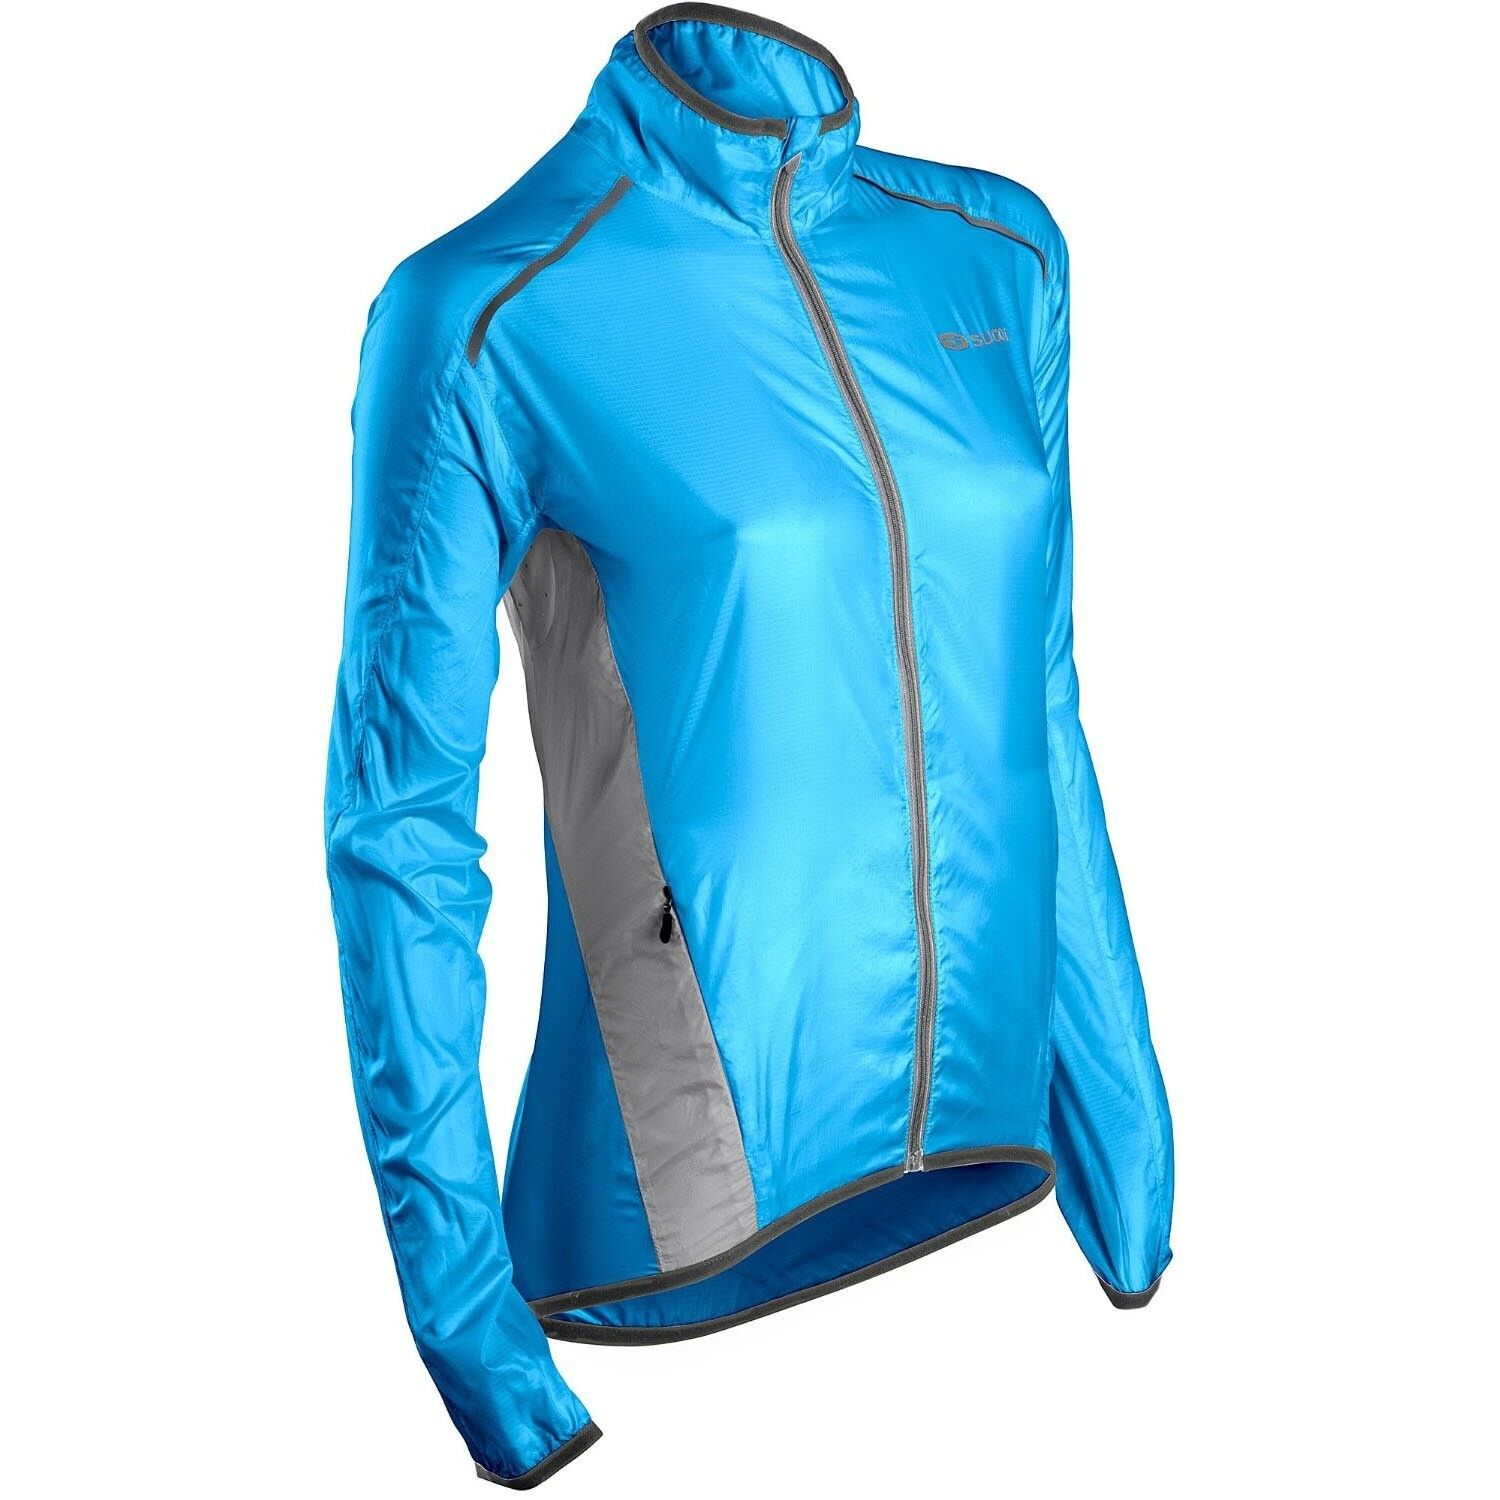 Sugoi Helium Femmes Coupe taille xs pluie veste vélo veste veste veste veste outdoor 35135a